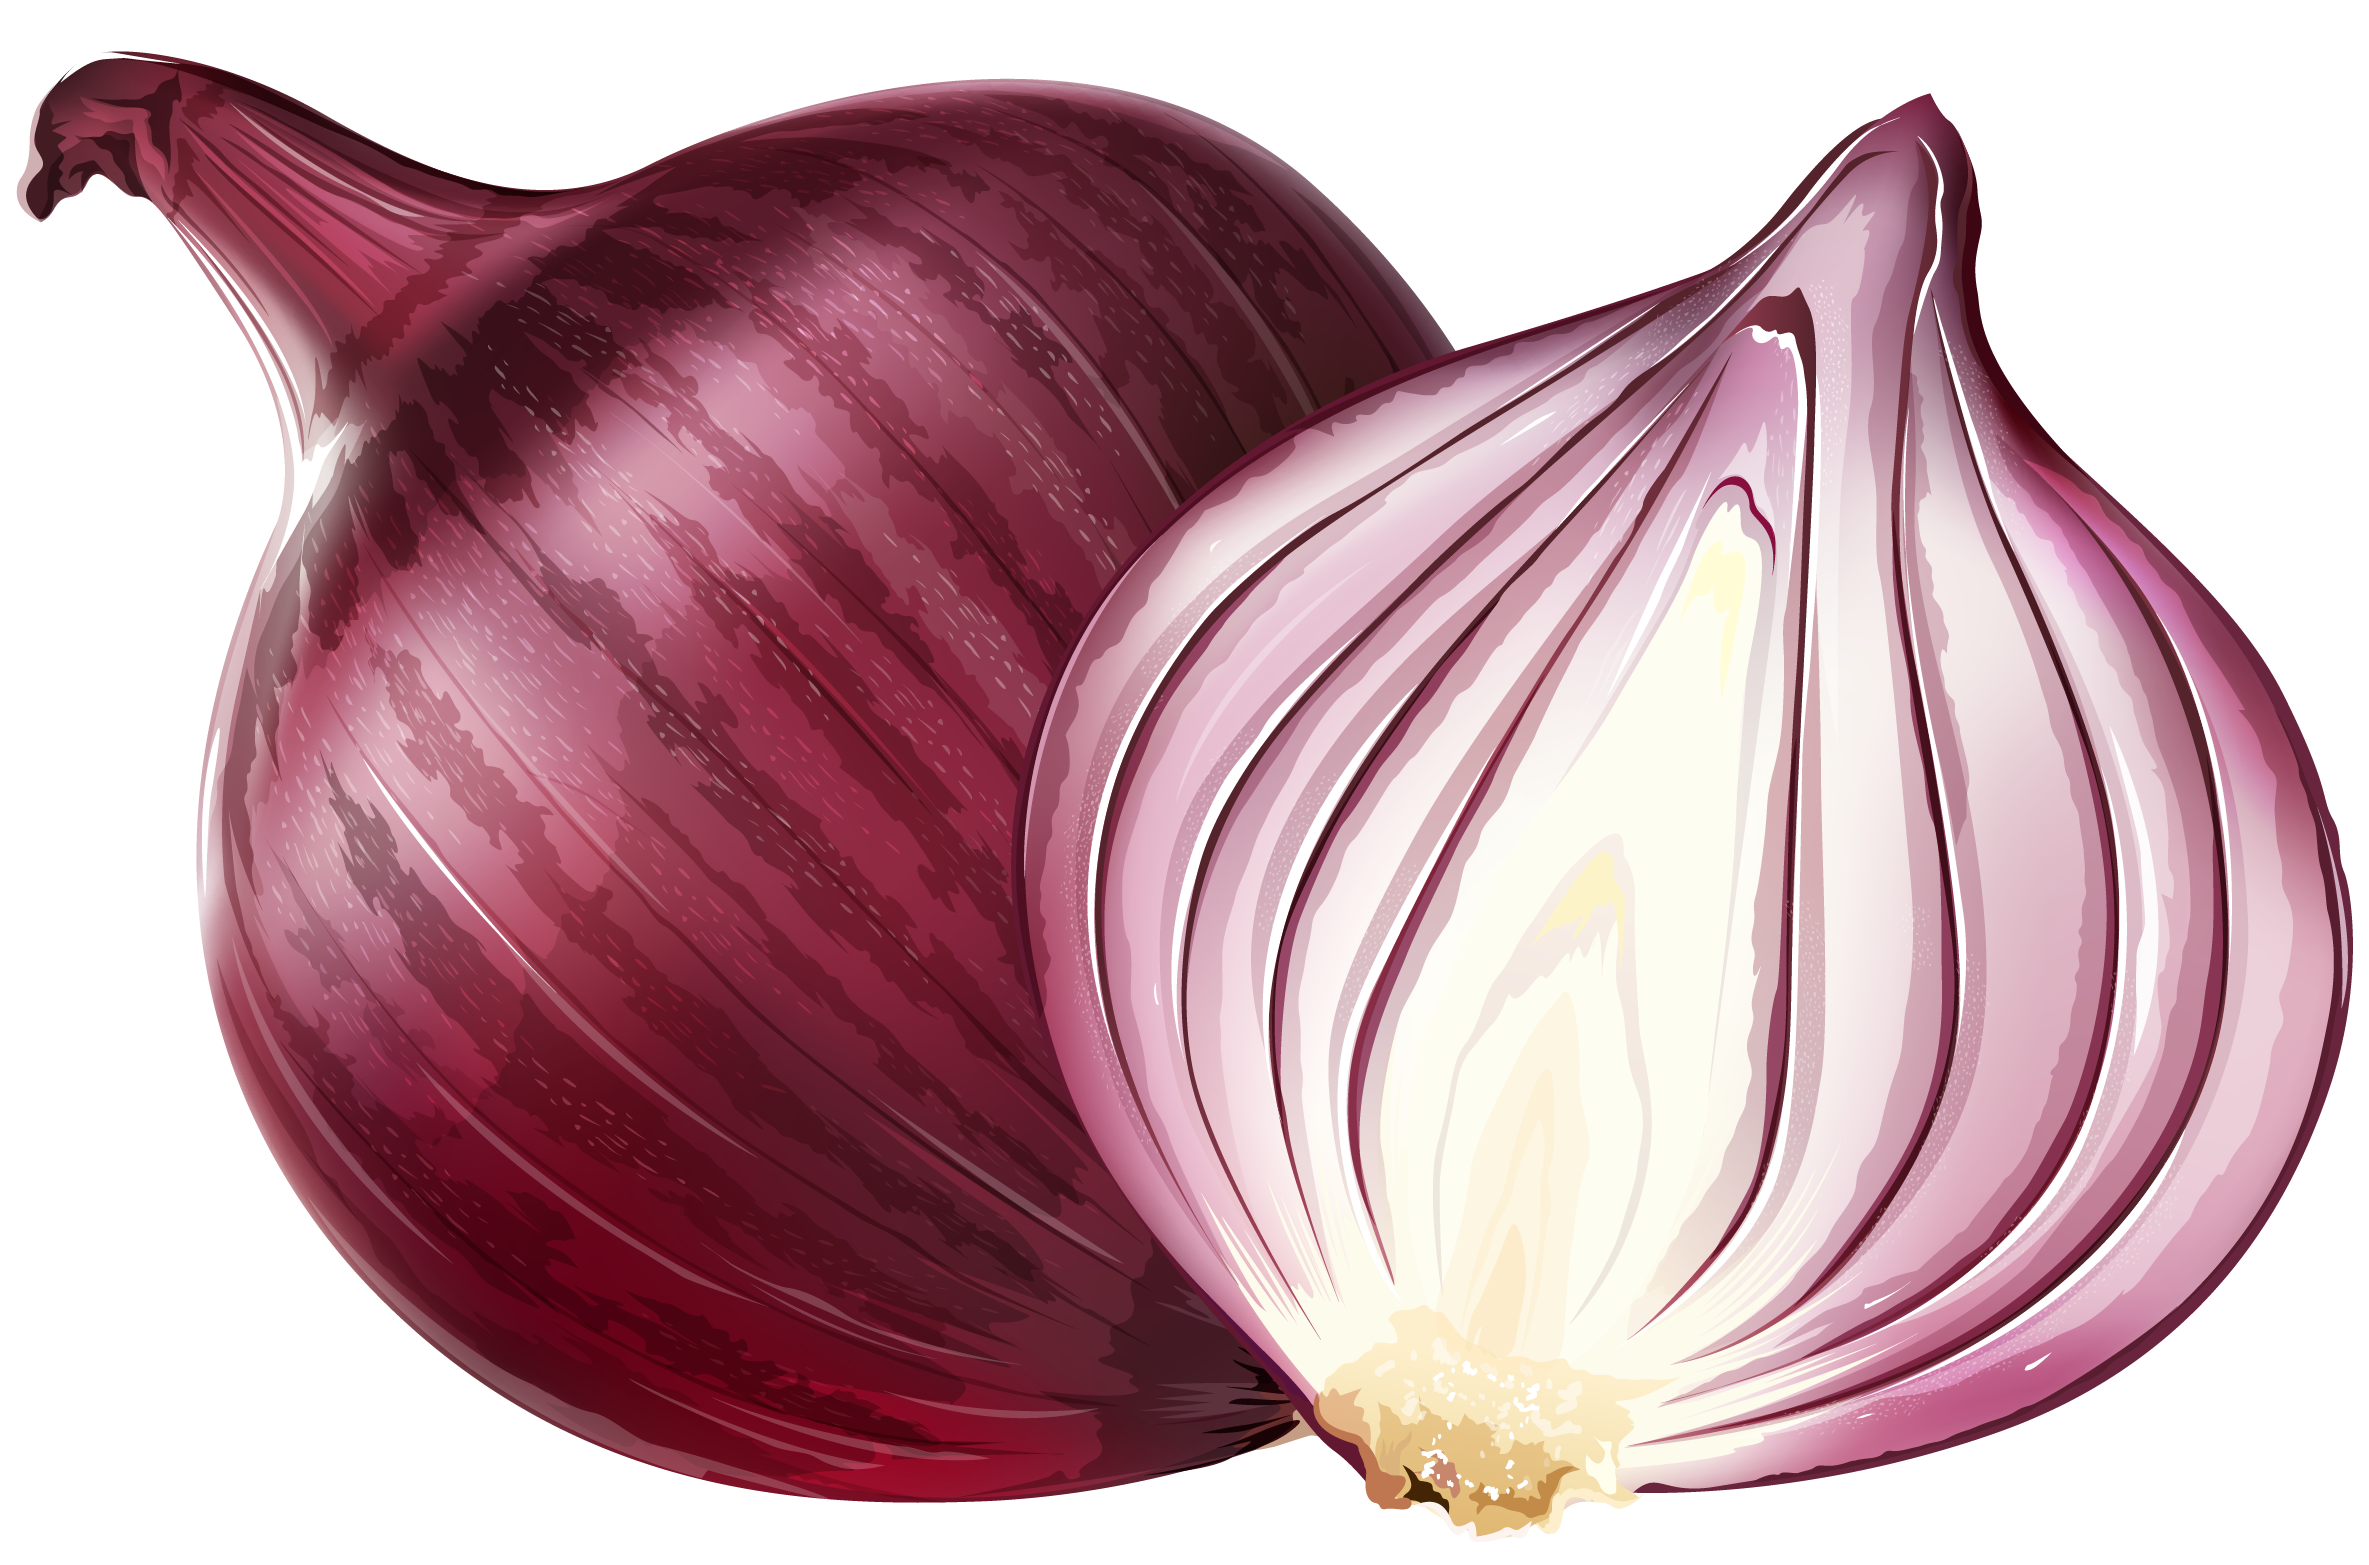 Red Onion Clipart